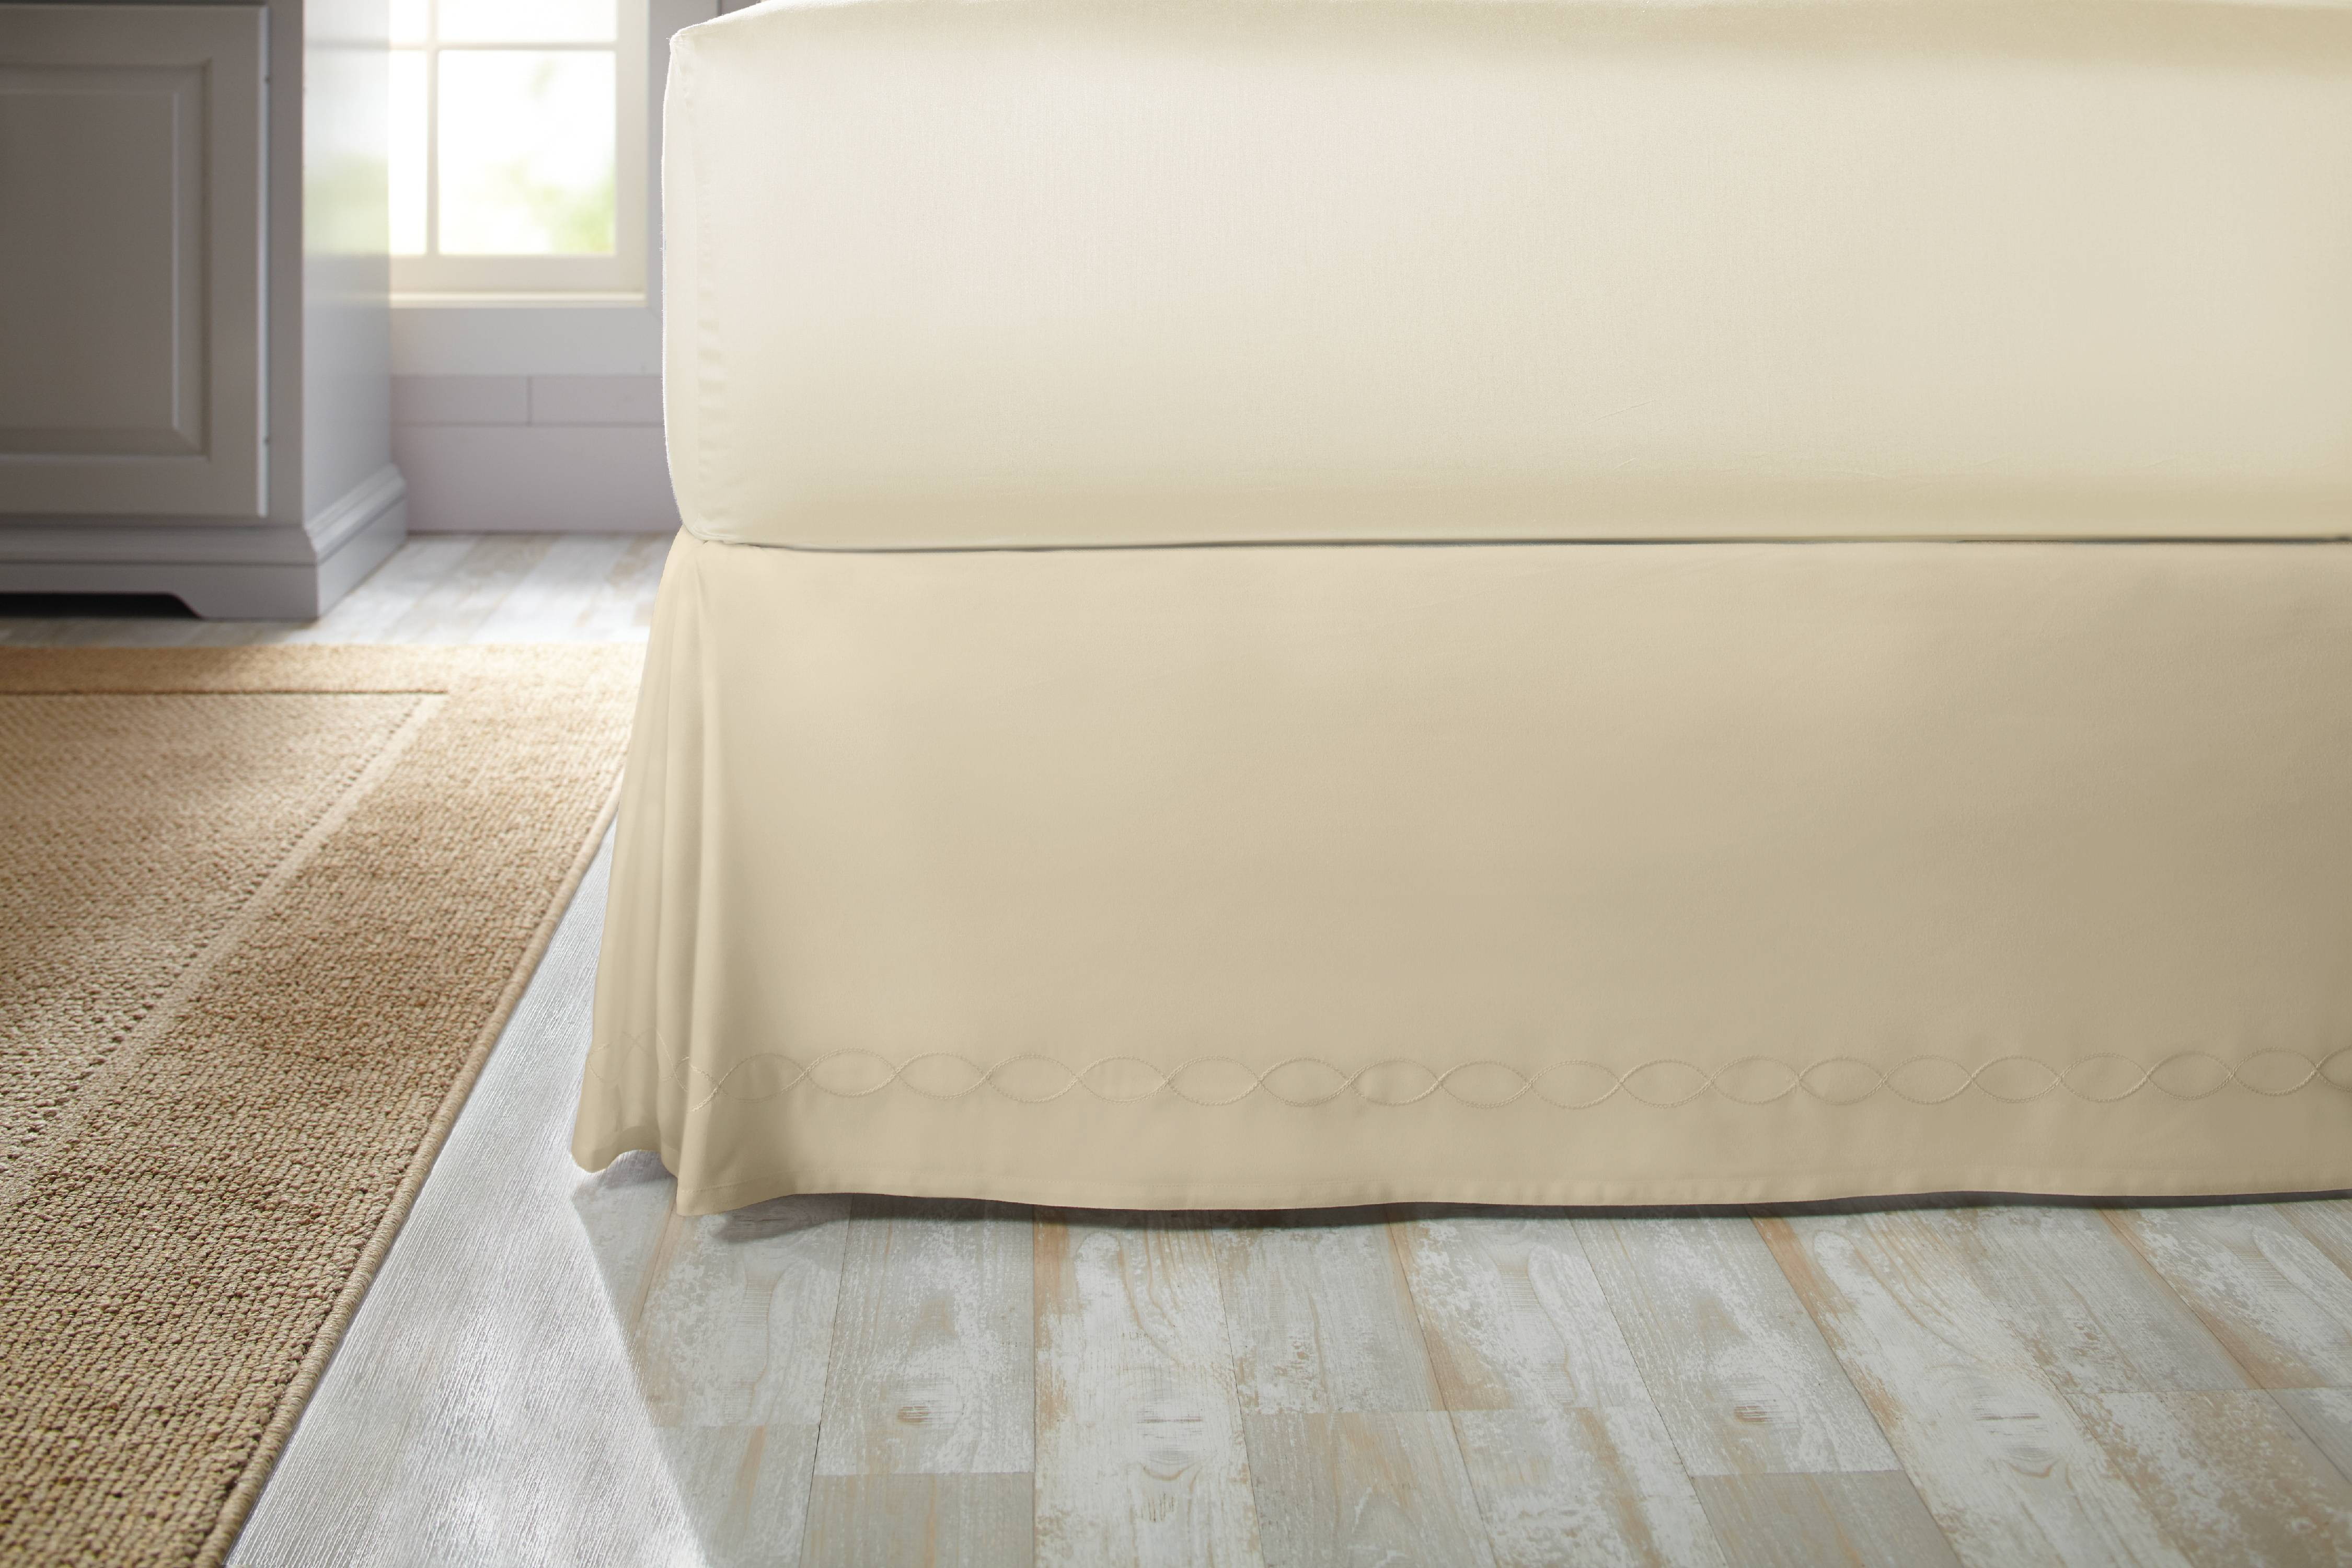 Better Homes & Gardens Chain Stitch Loop Bedskirt by Keeco